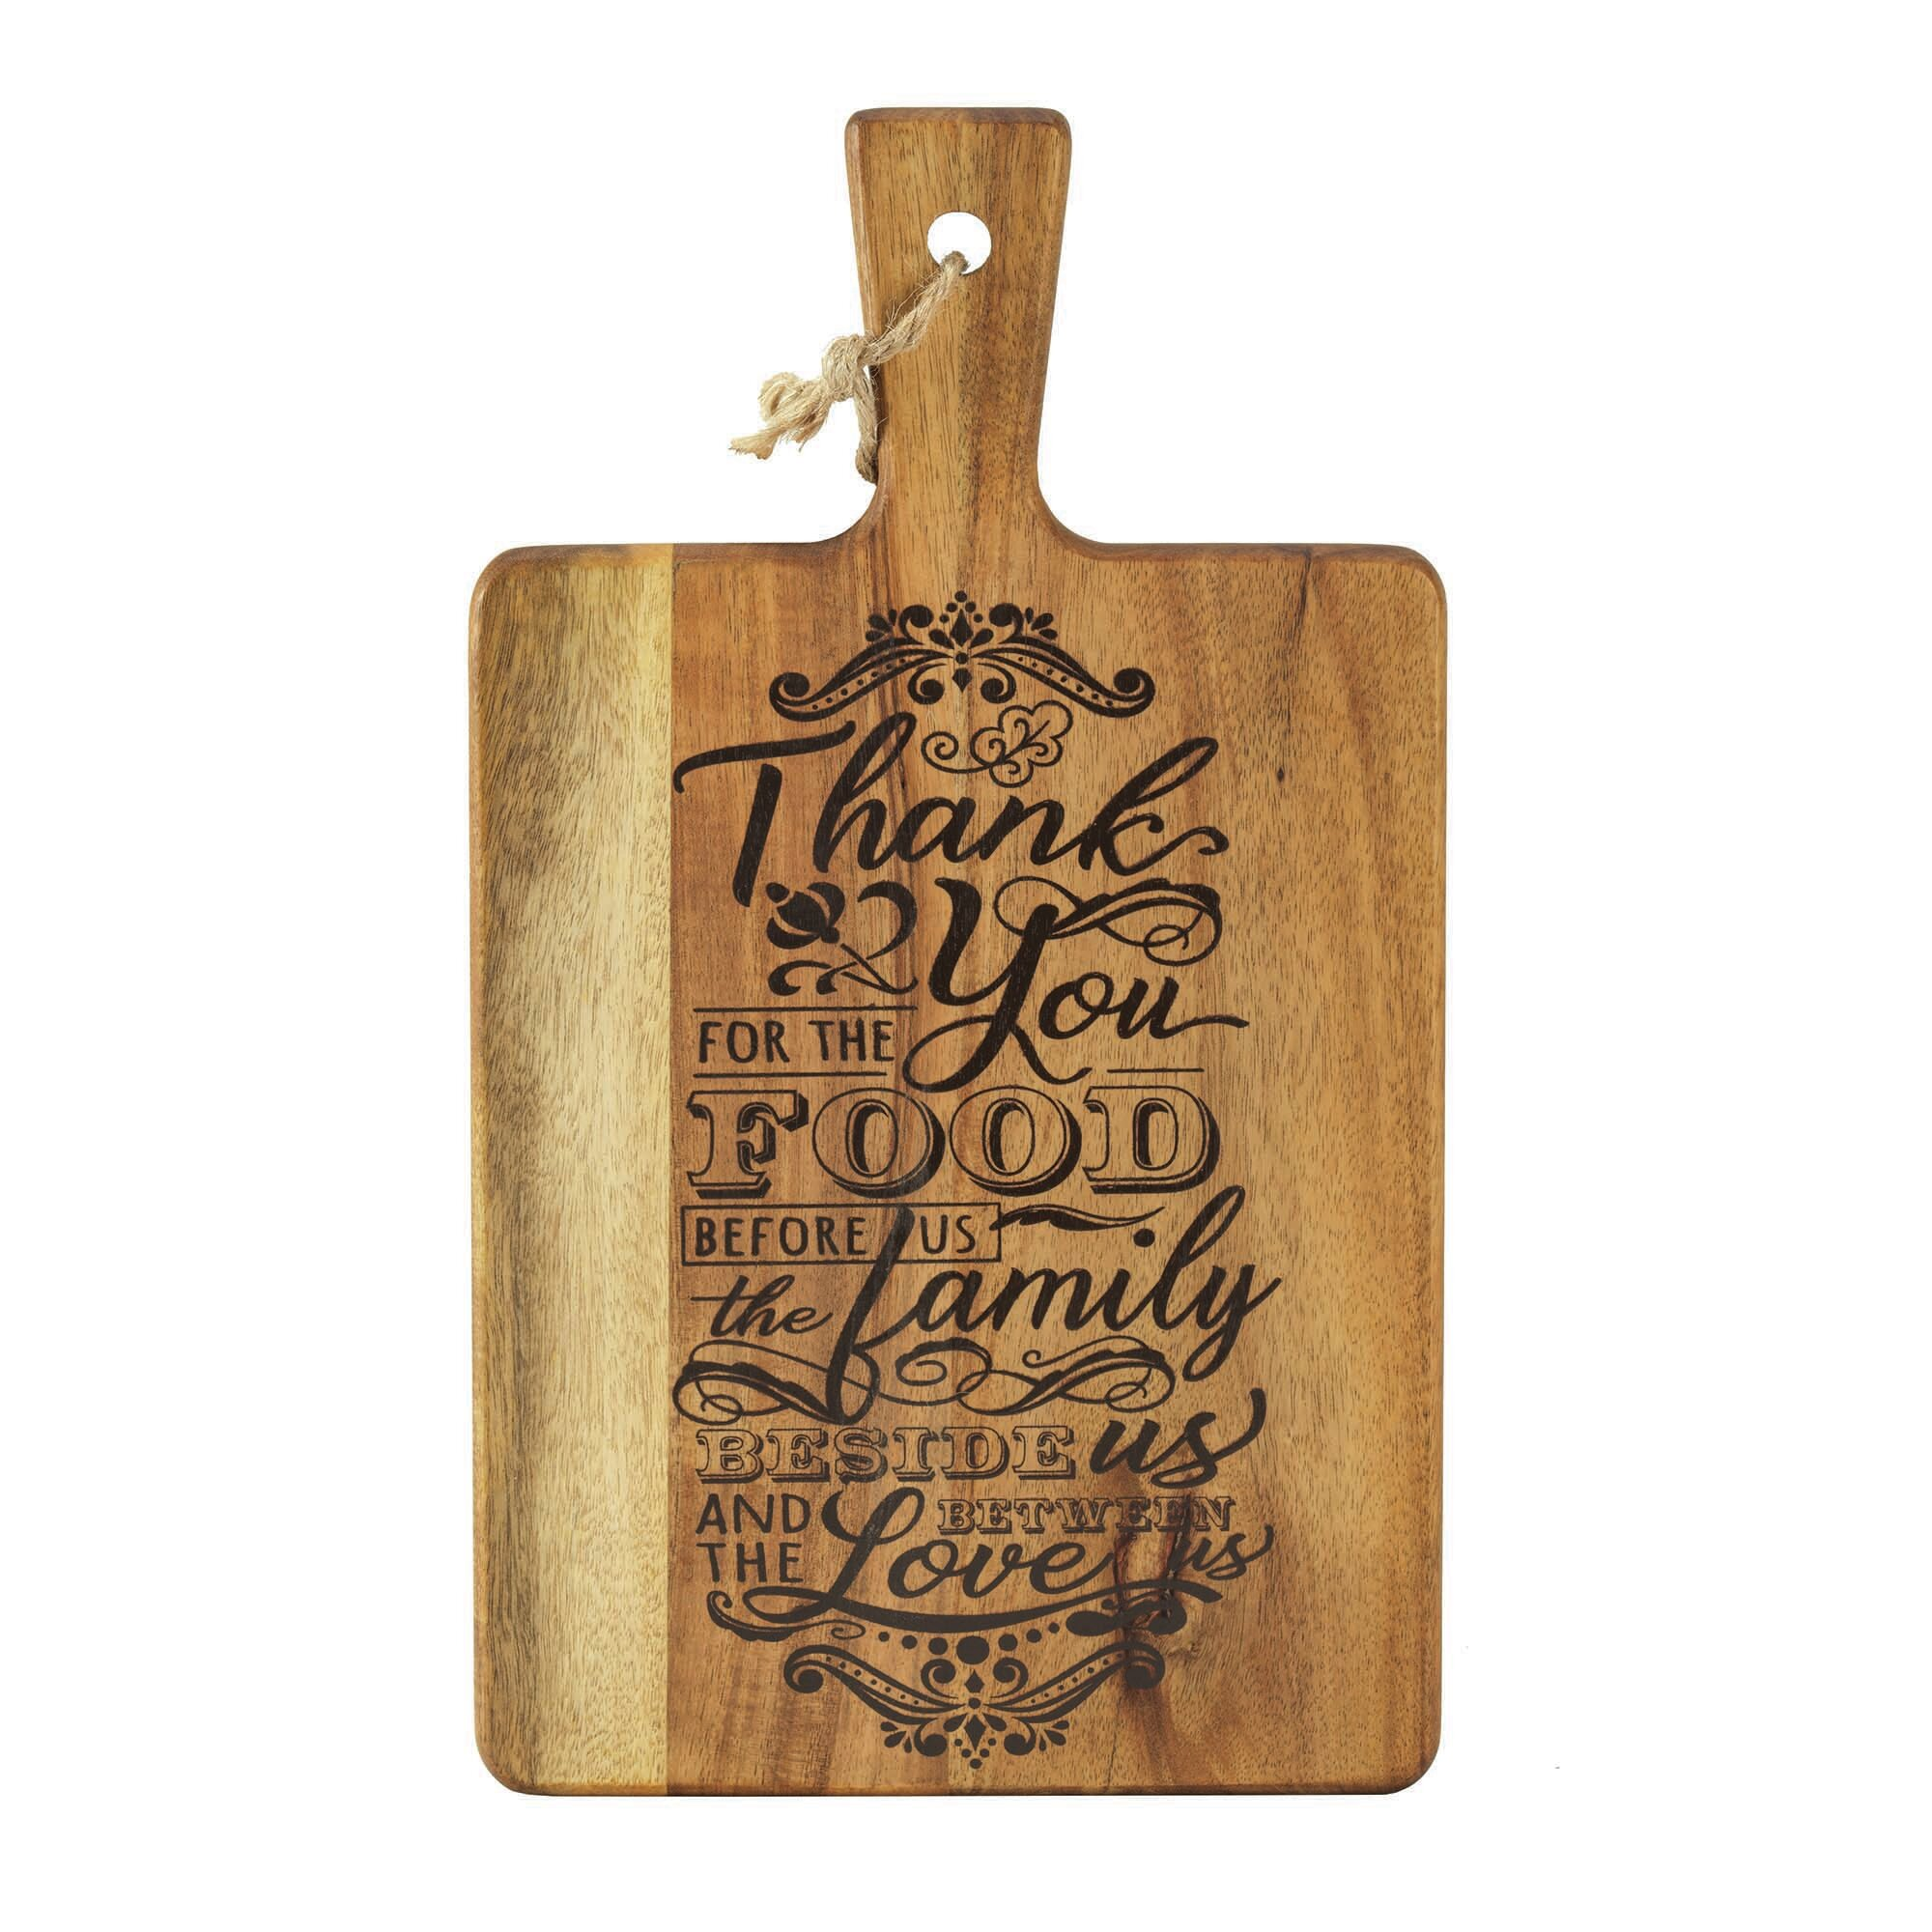 This is us decorative cutting board